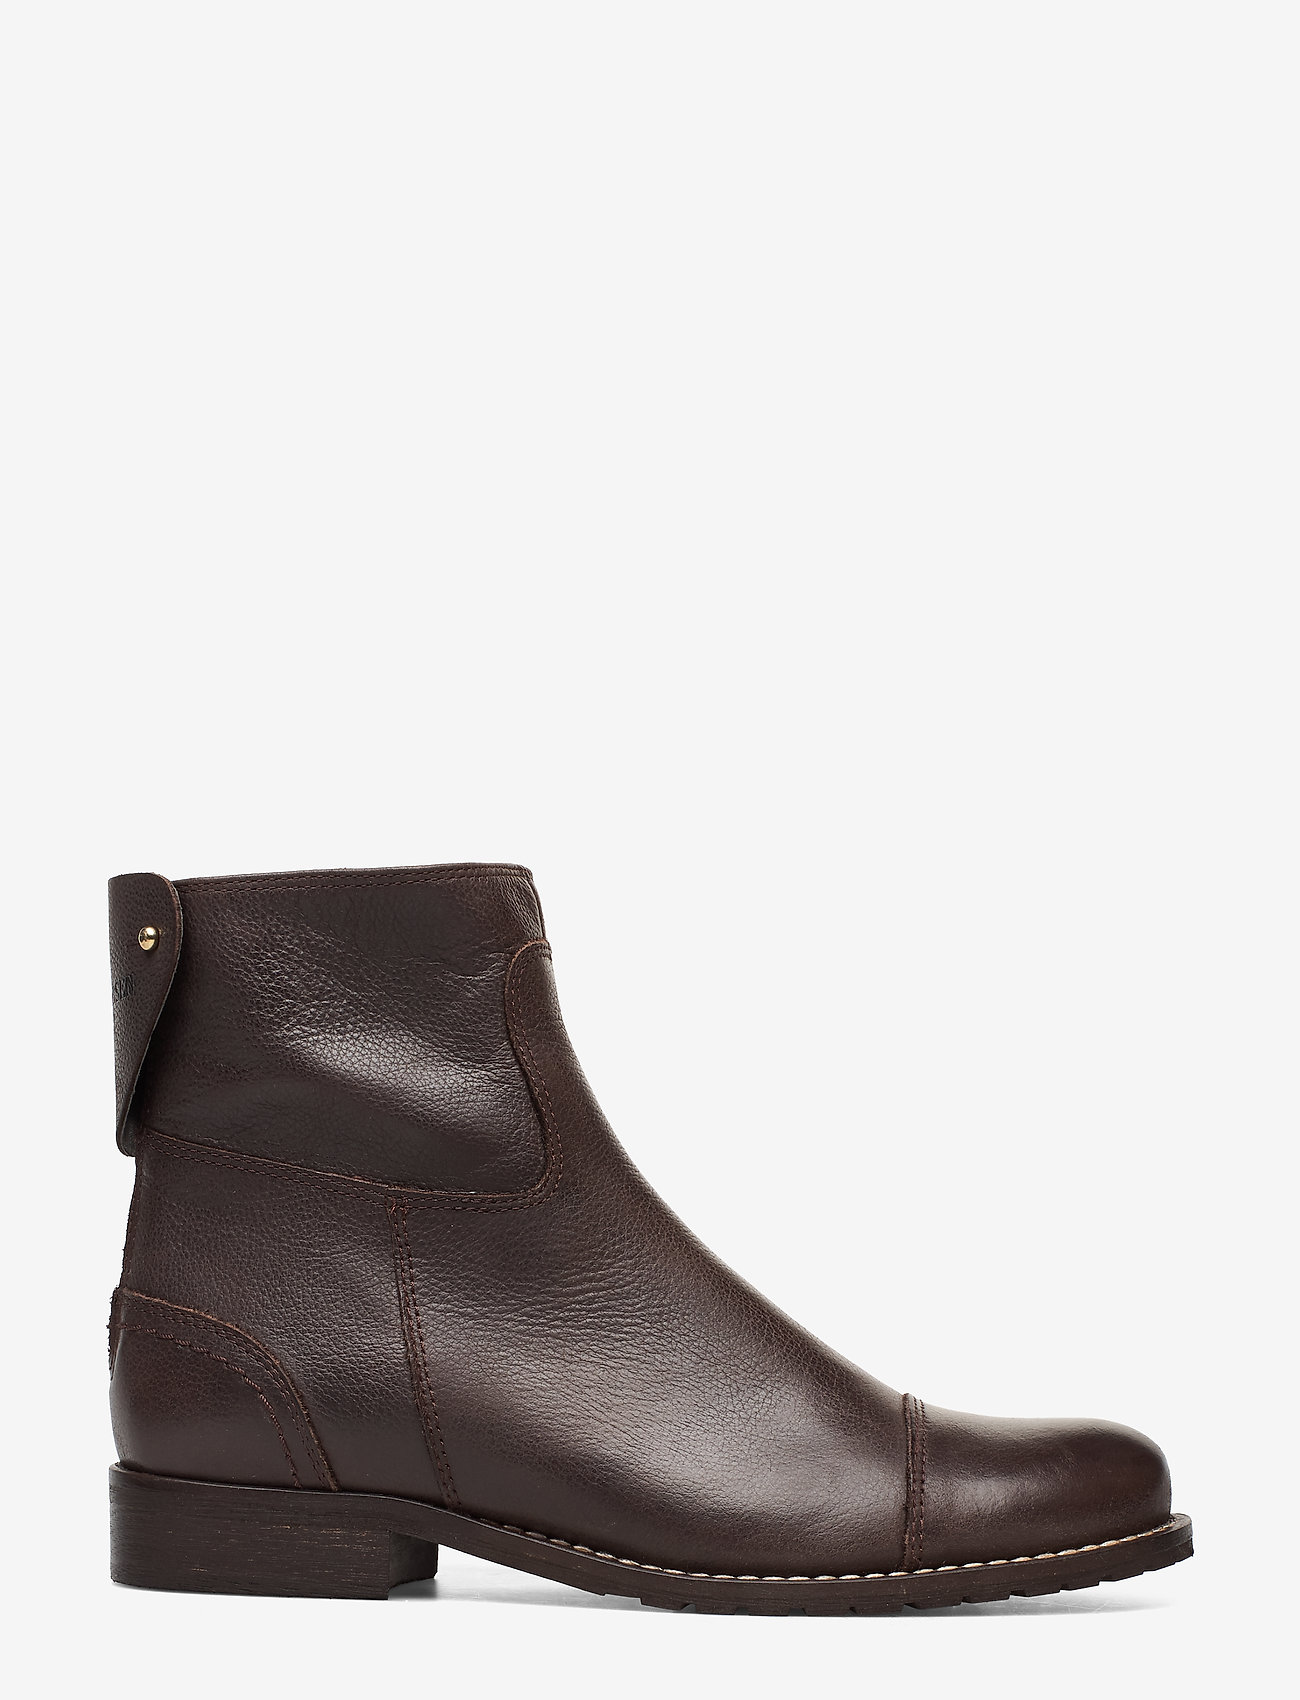 Ankle Boots (Chocolate) - Ilse Jacobsen tweSMe